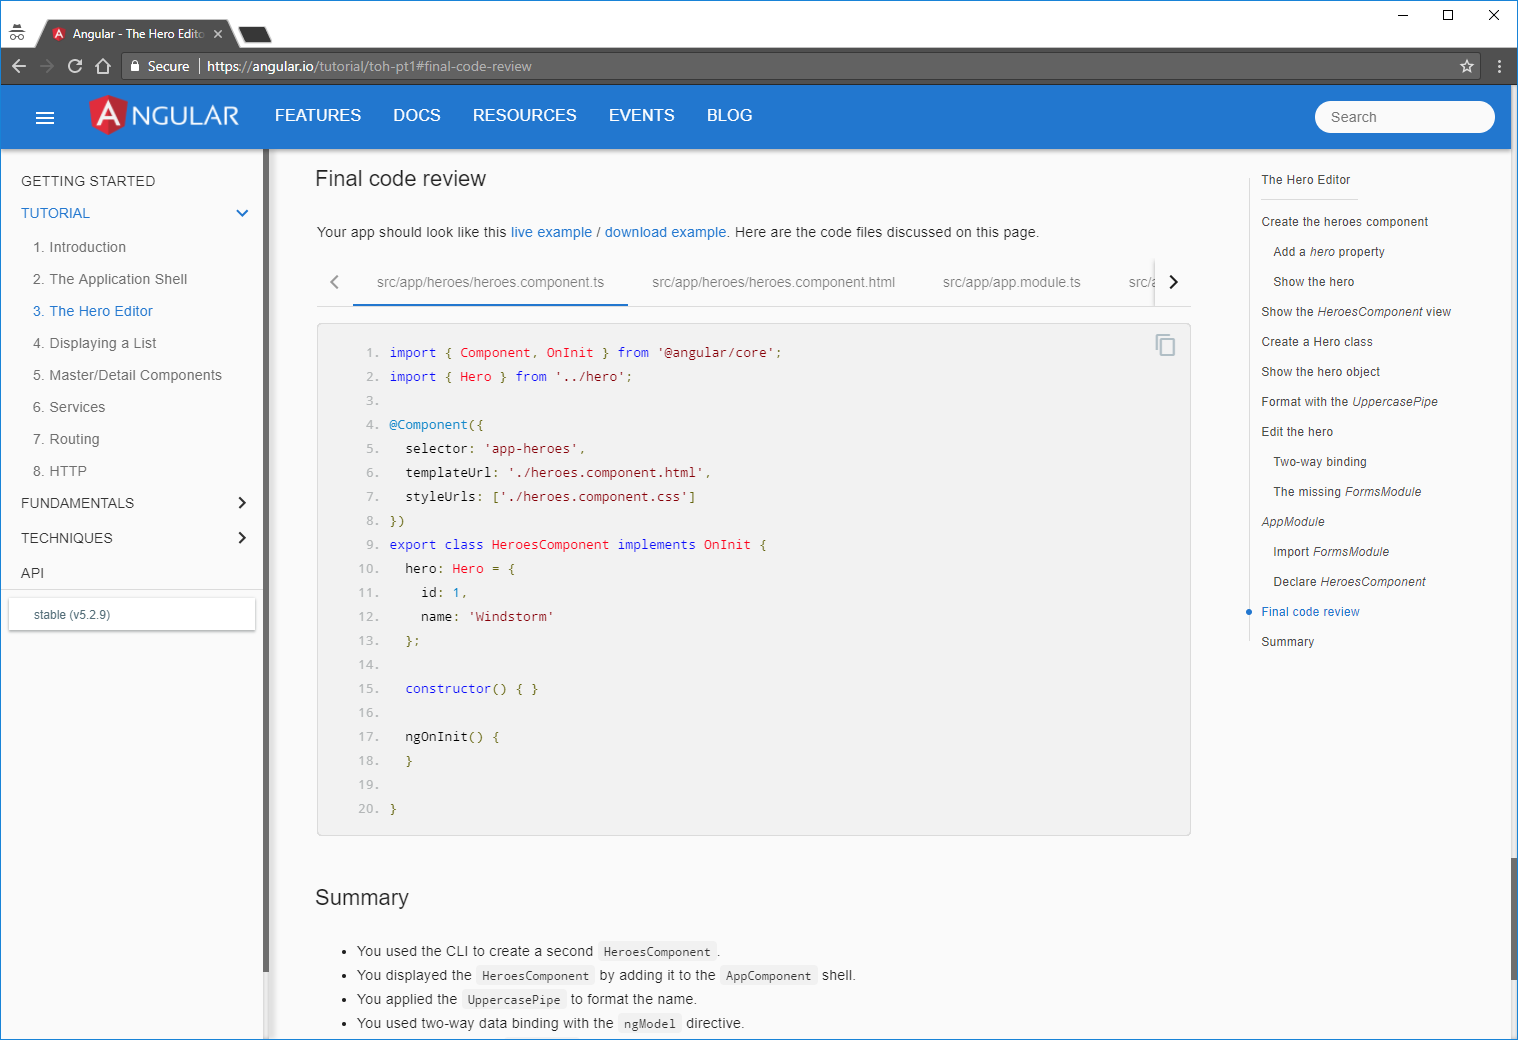 angular-docs-screenshot